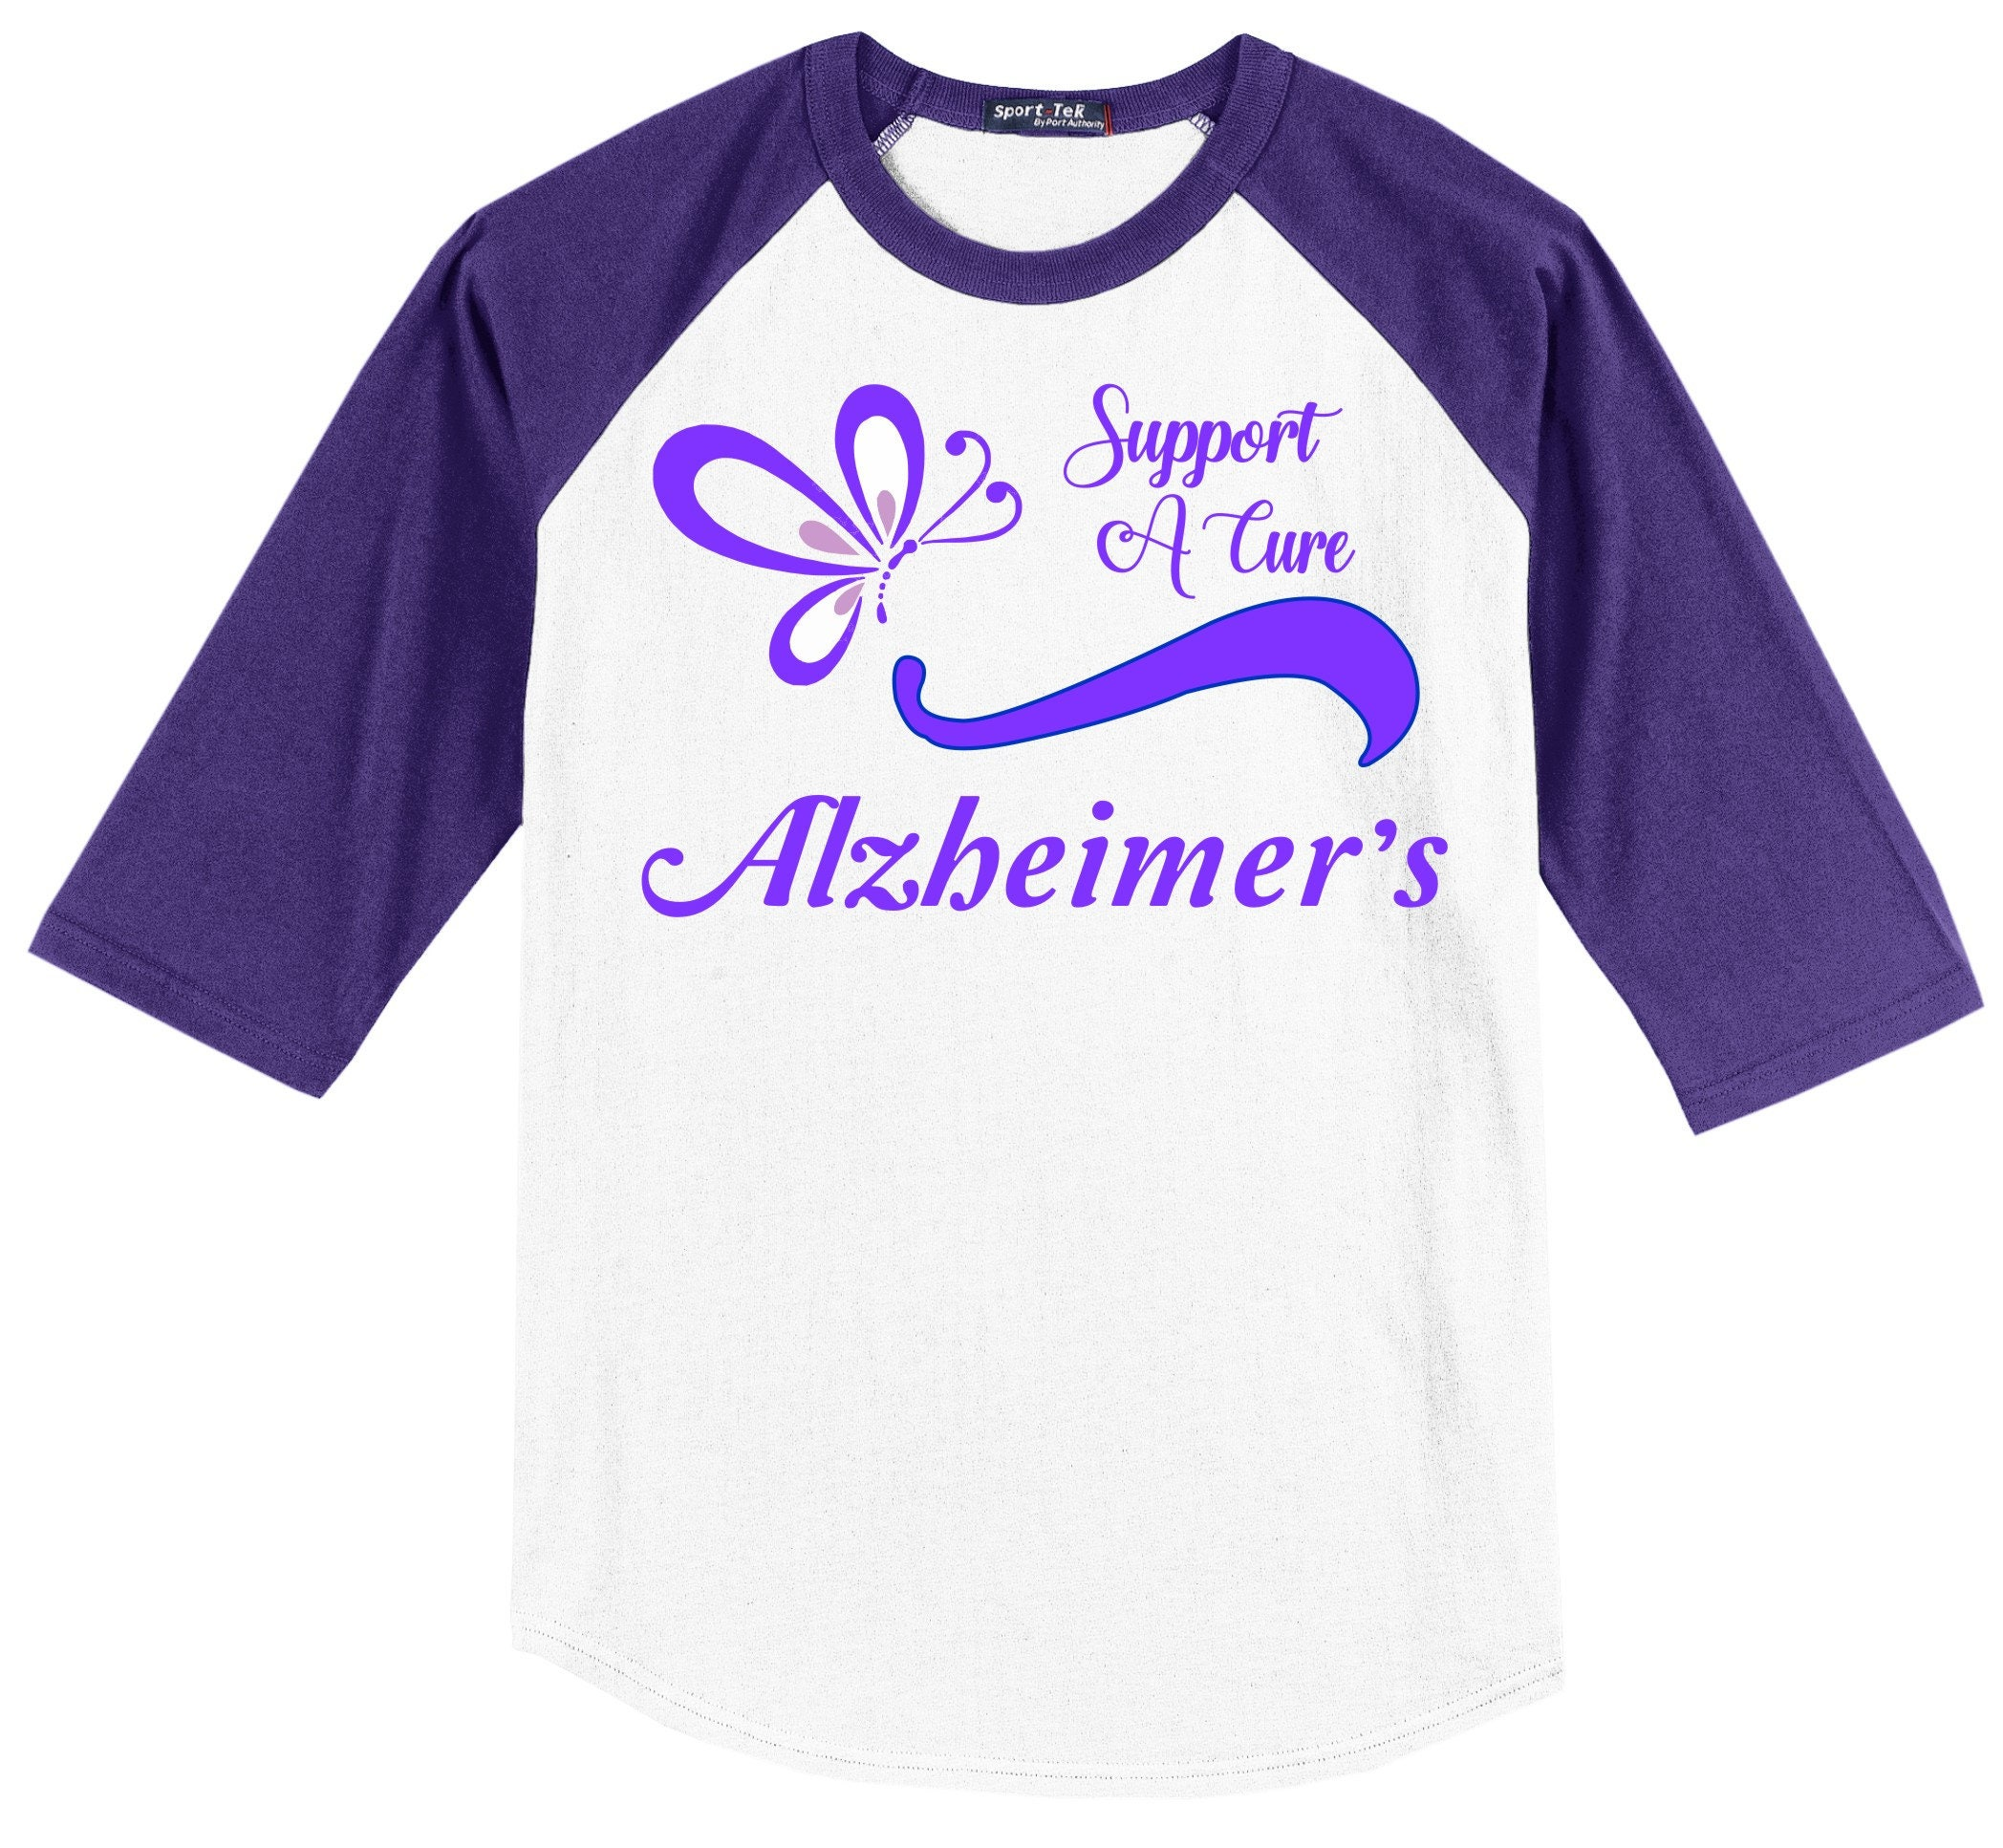 e17325595f7 Alzheimer's Awareness Raglan T shirt (3/4 sleeve) - Support A Cure ...